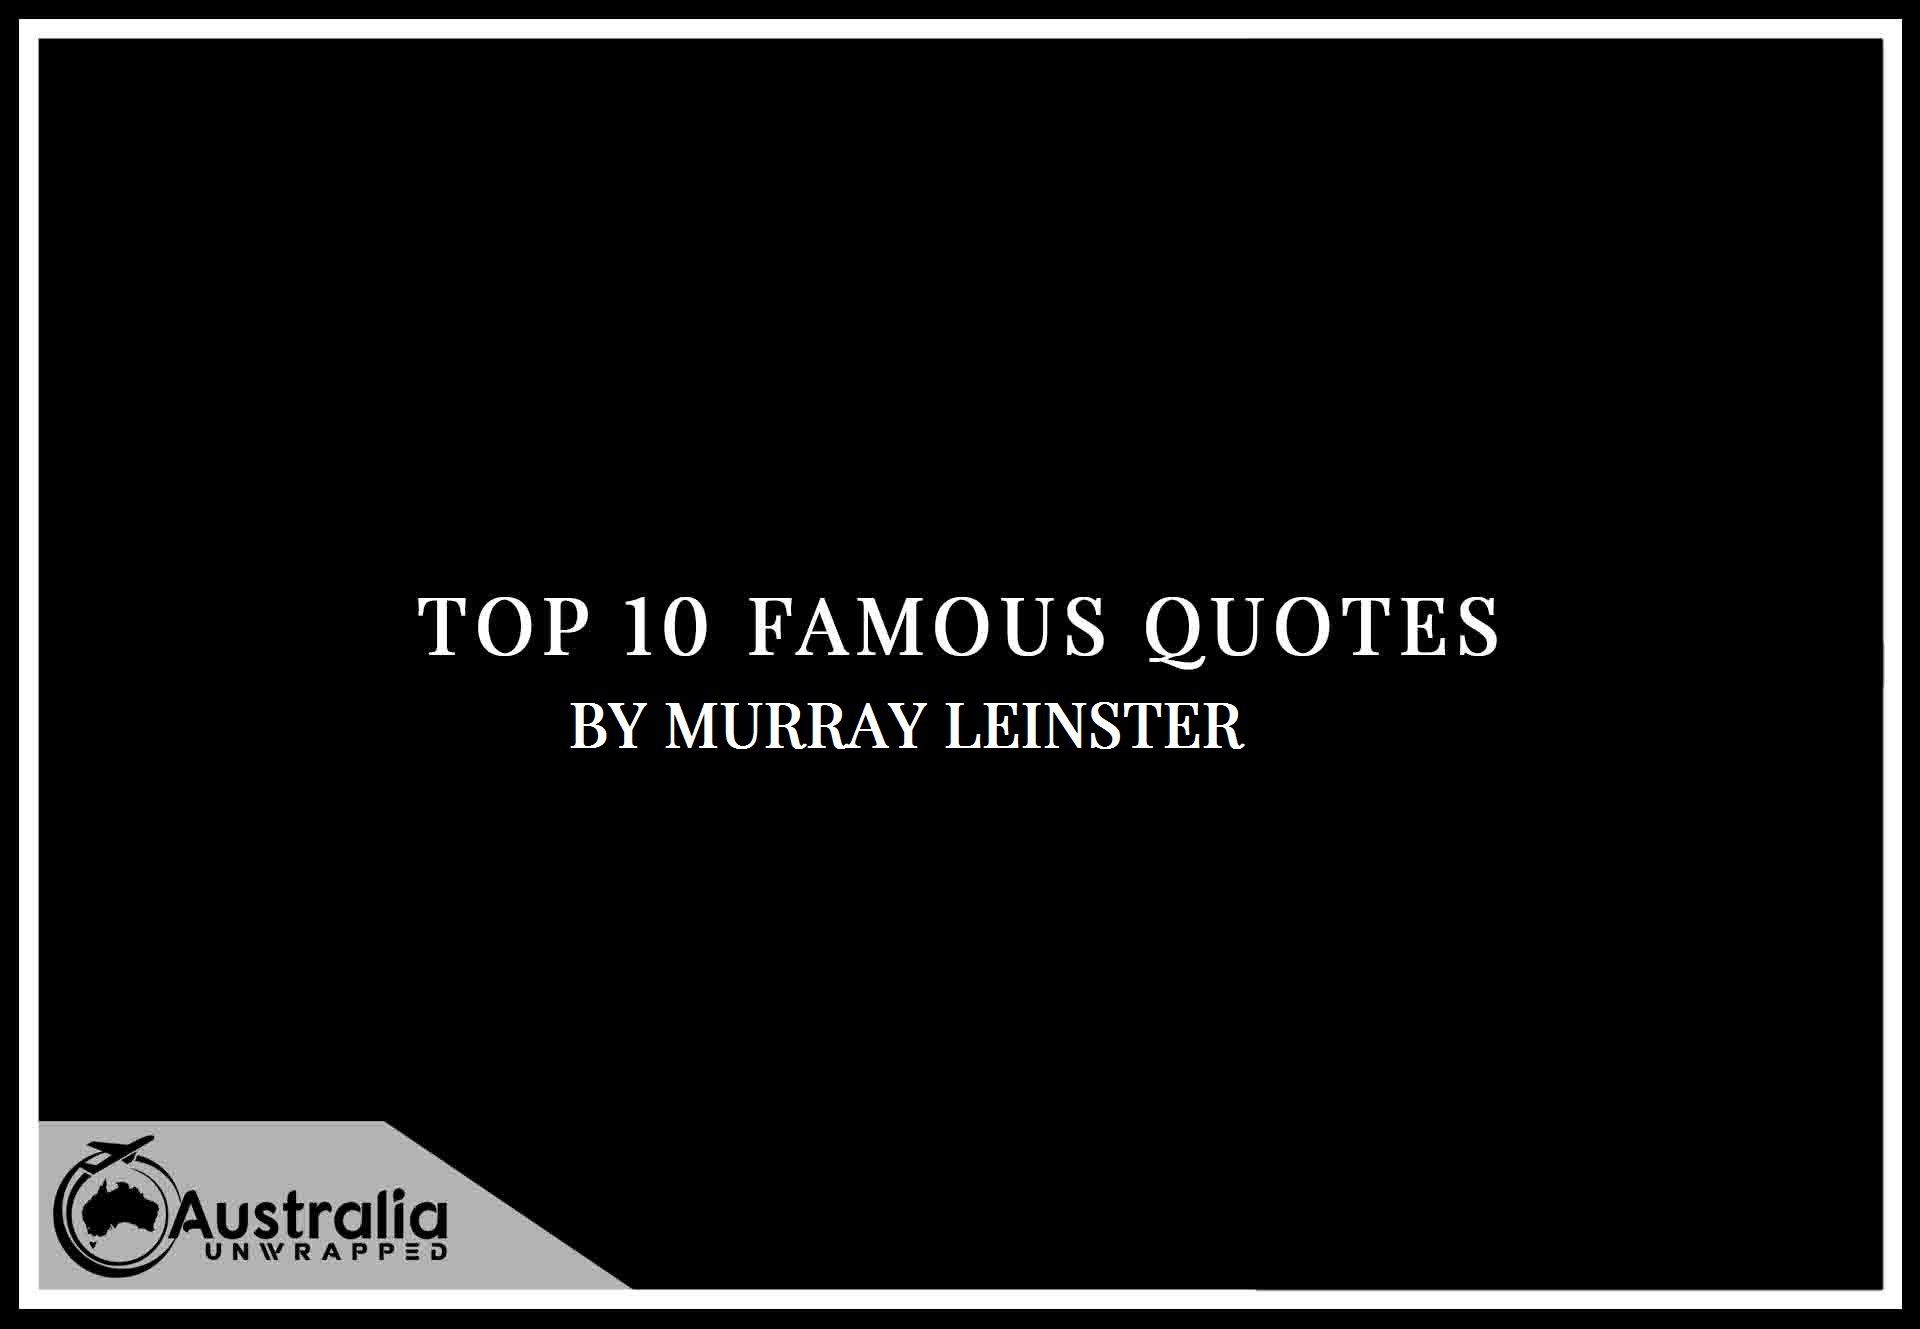 Murray Leinster's Top 10 Popular and Famous Quotes